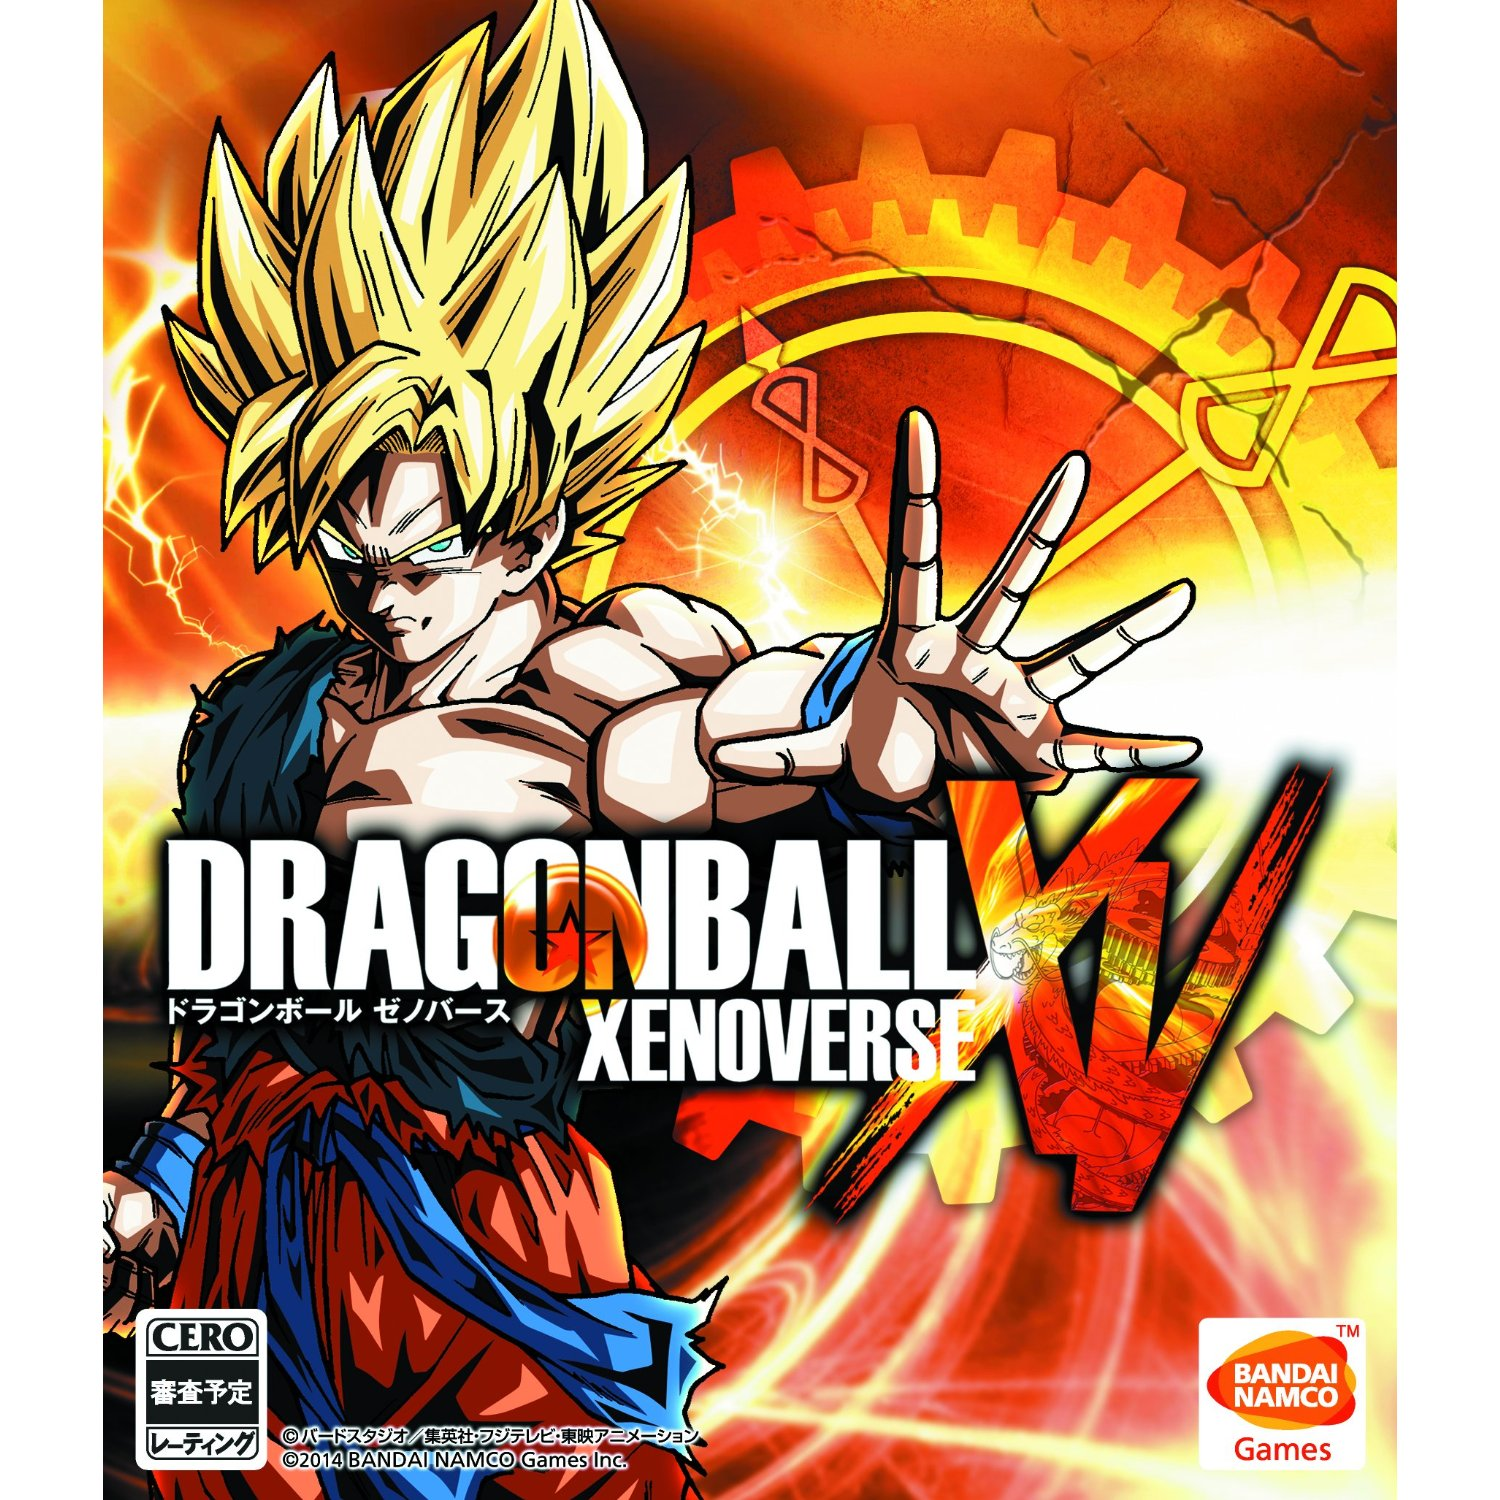 Dragon Ball Xenoverse box-art